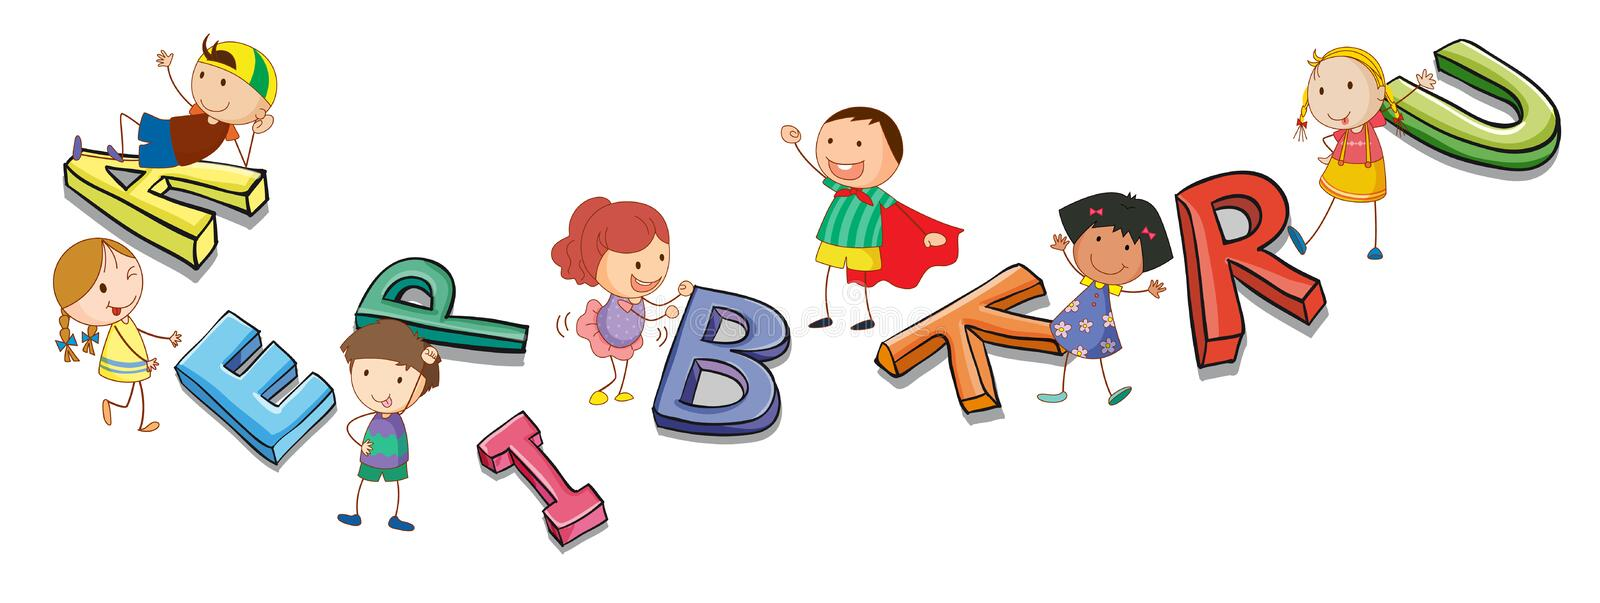 Kids playing with alphabets. Illustration of a kids playing with alphabets stock illustration